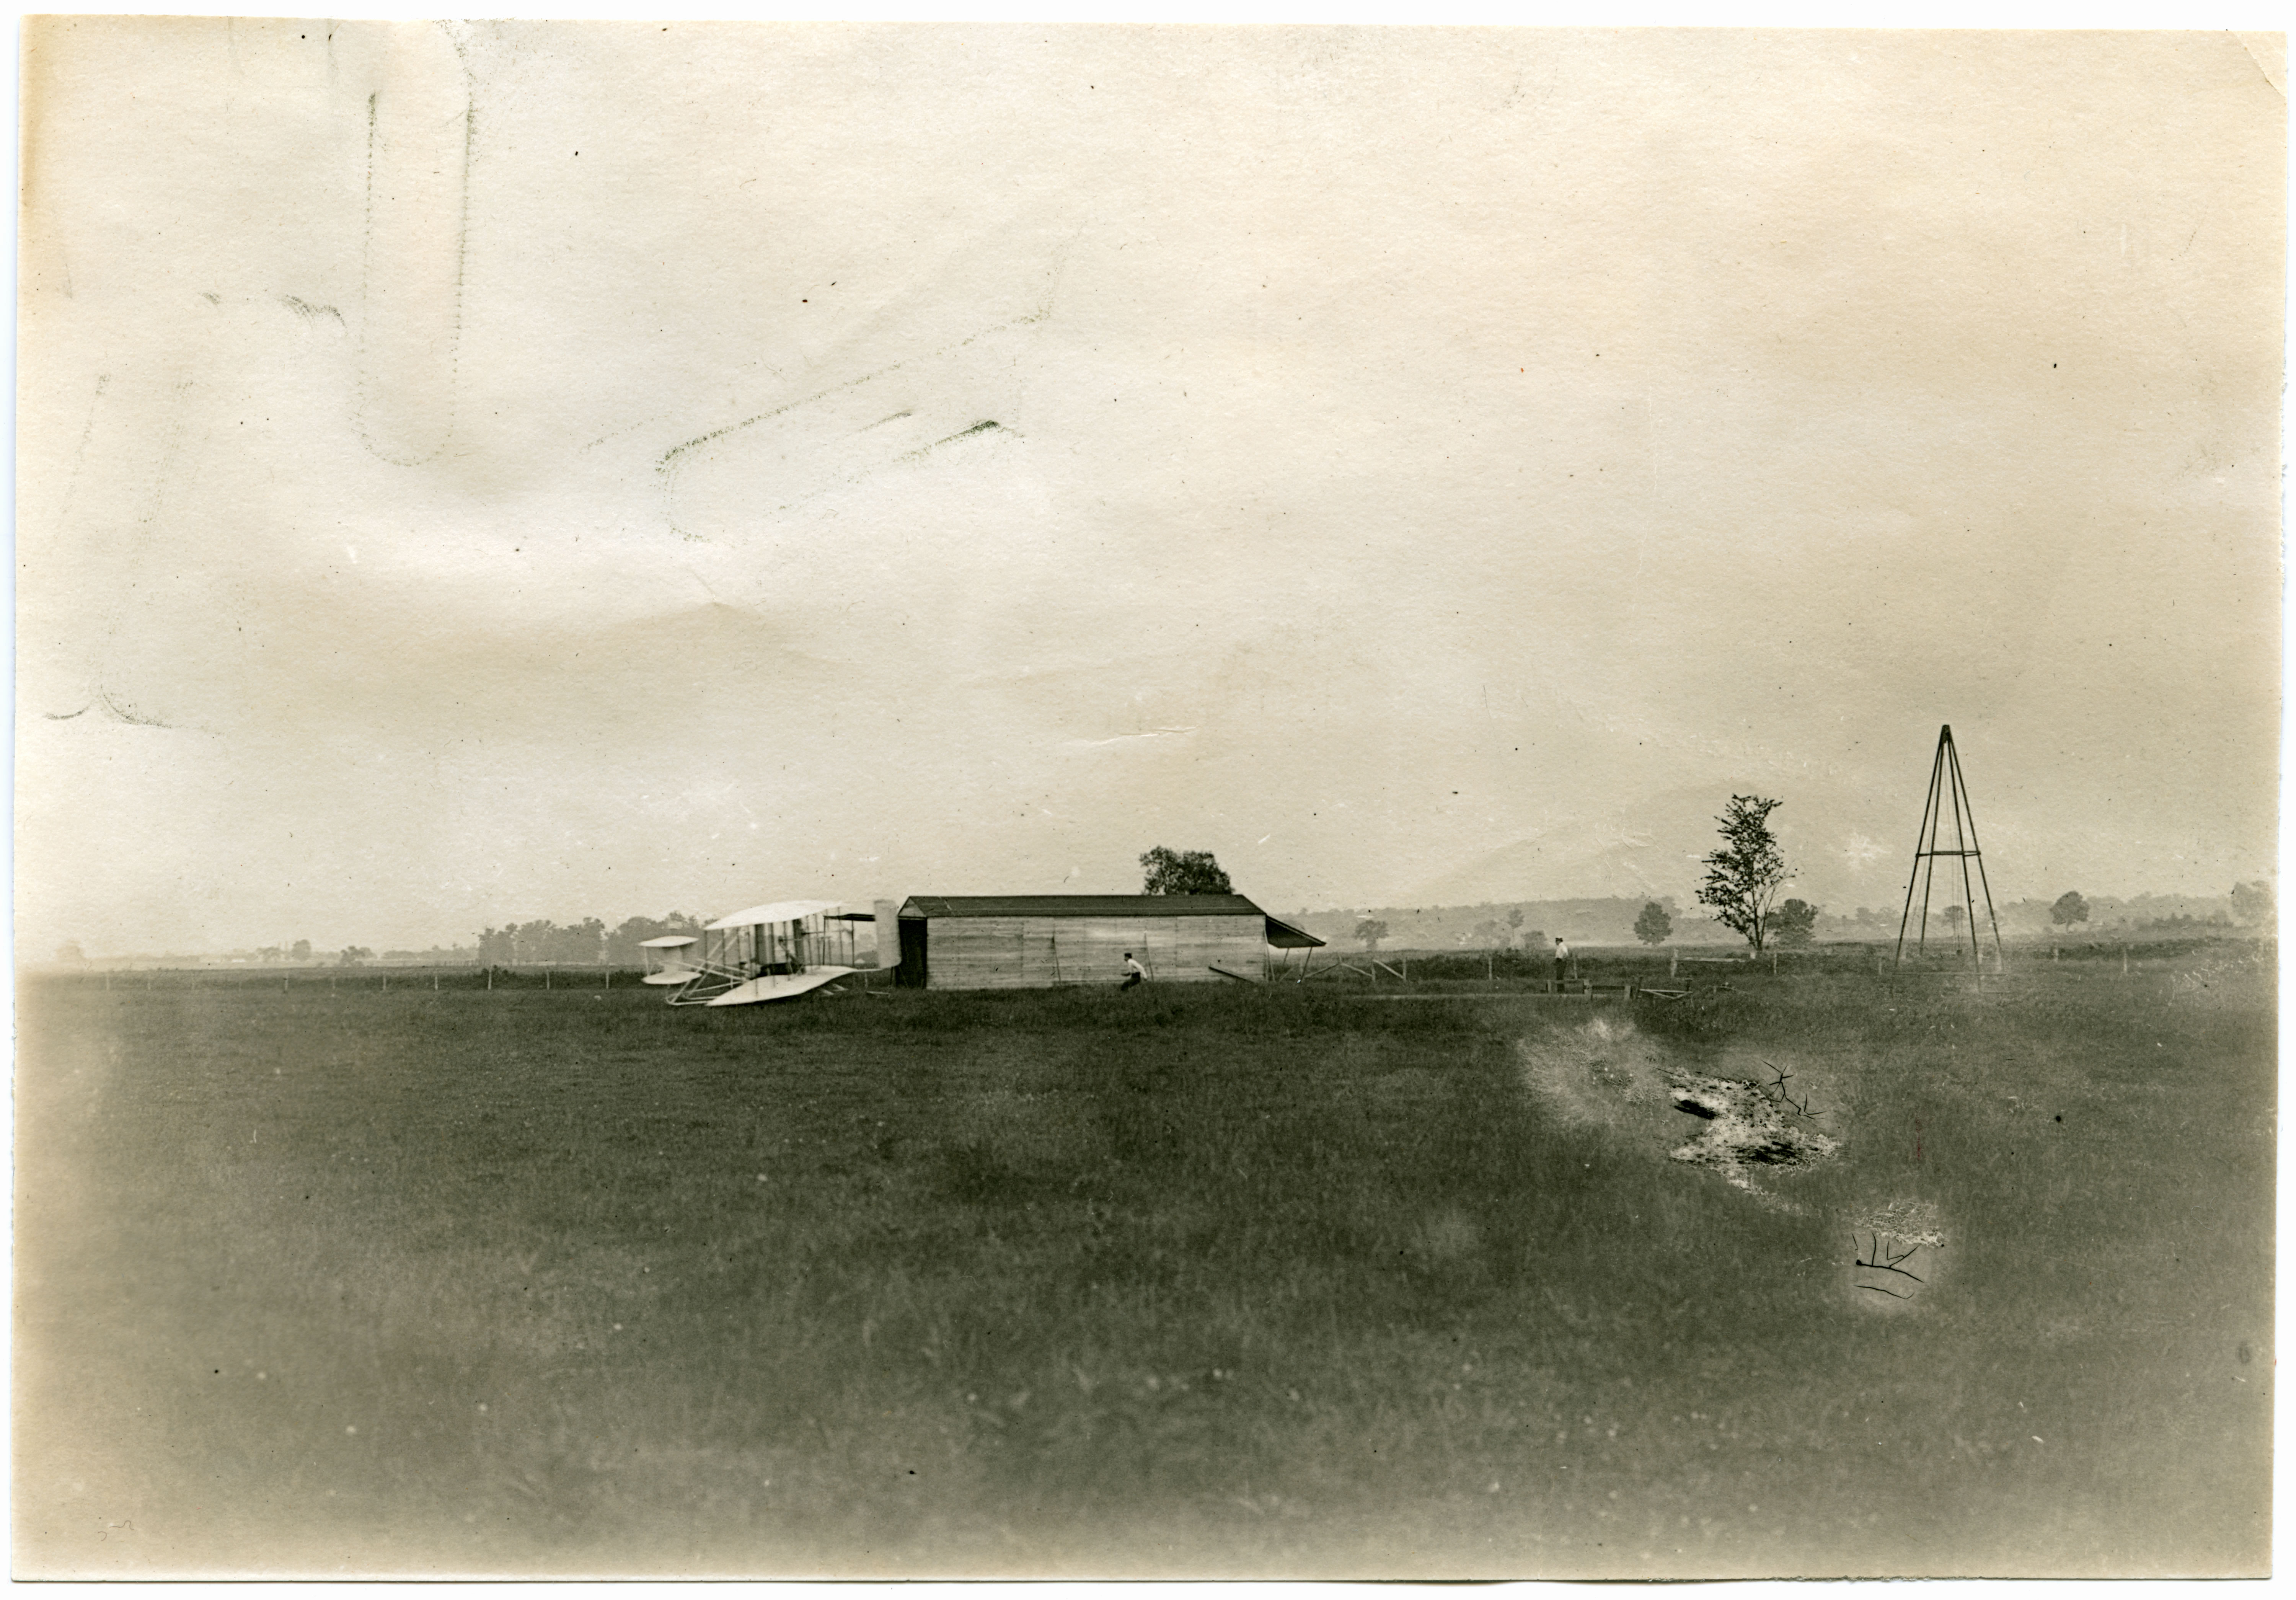 1904 Wright Flyer